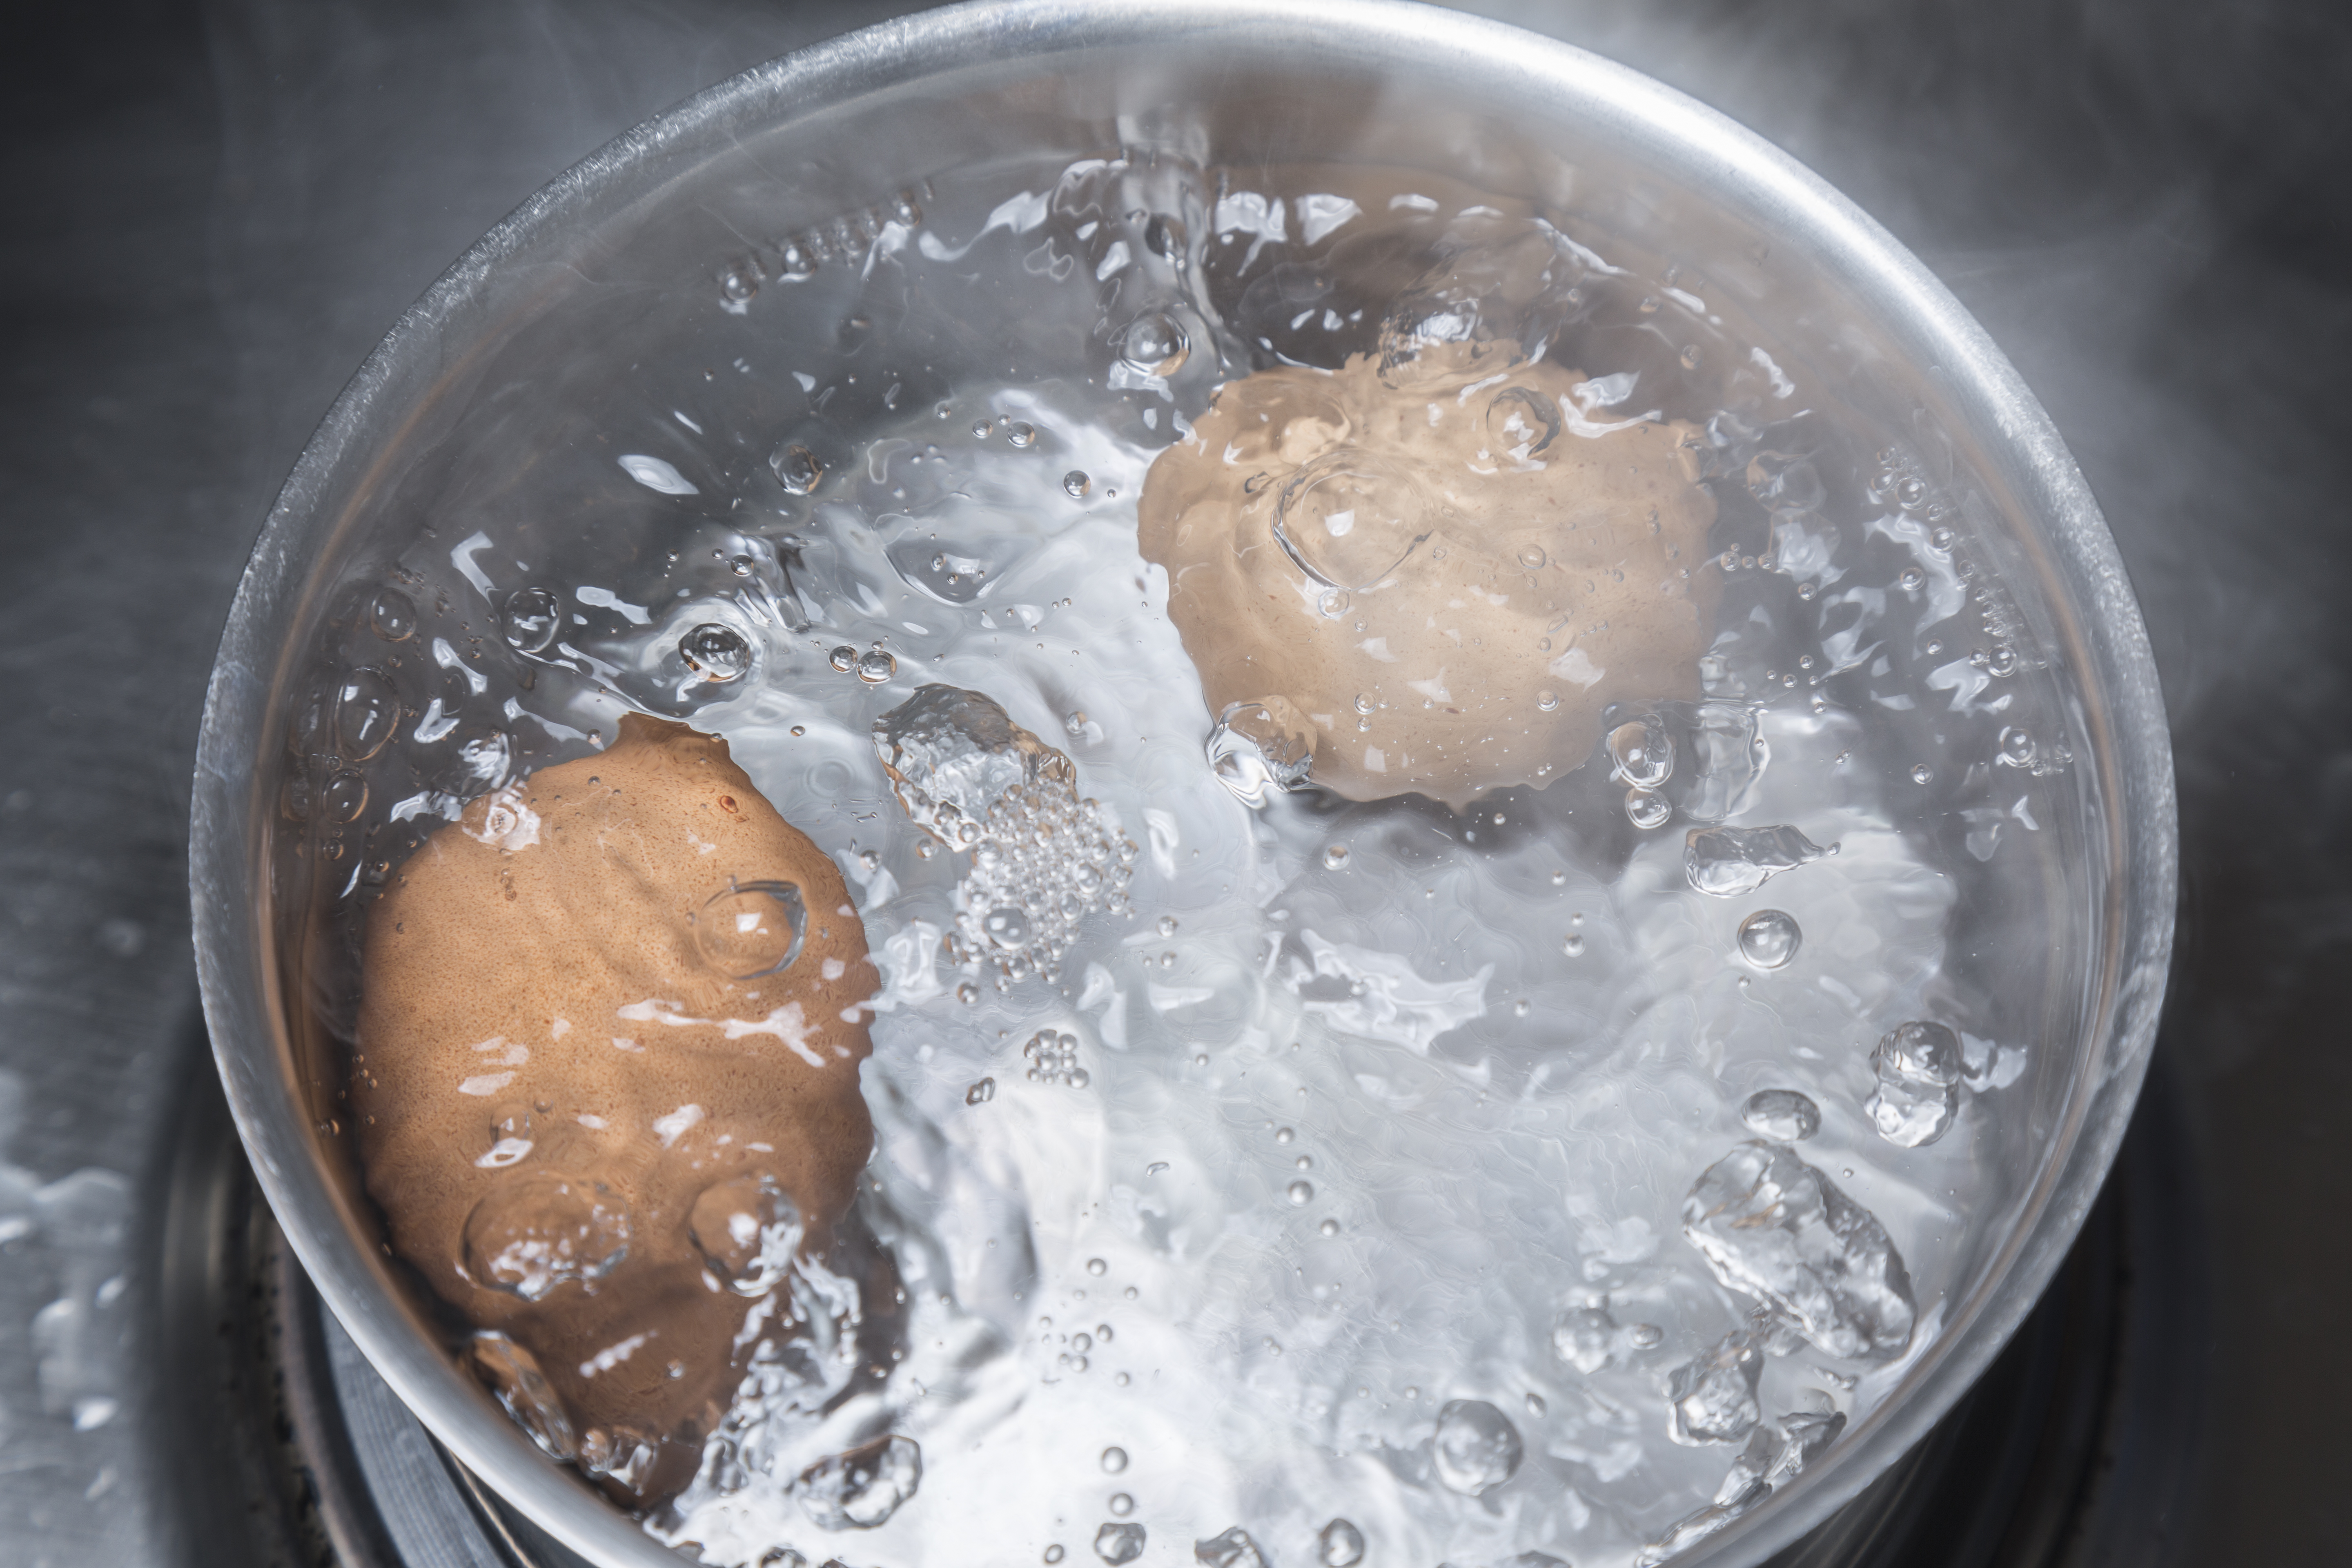 adding salt to water increases boiling point